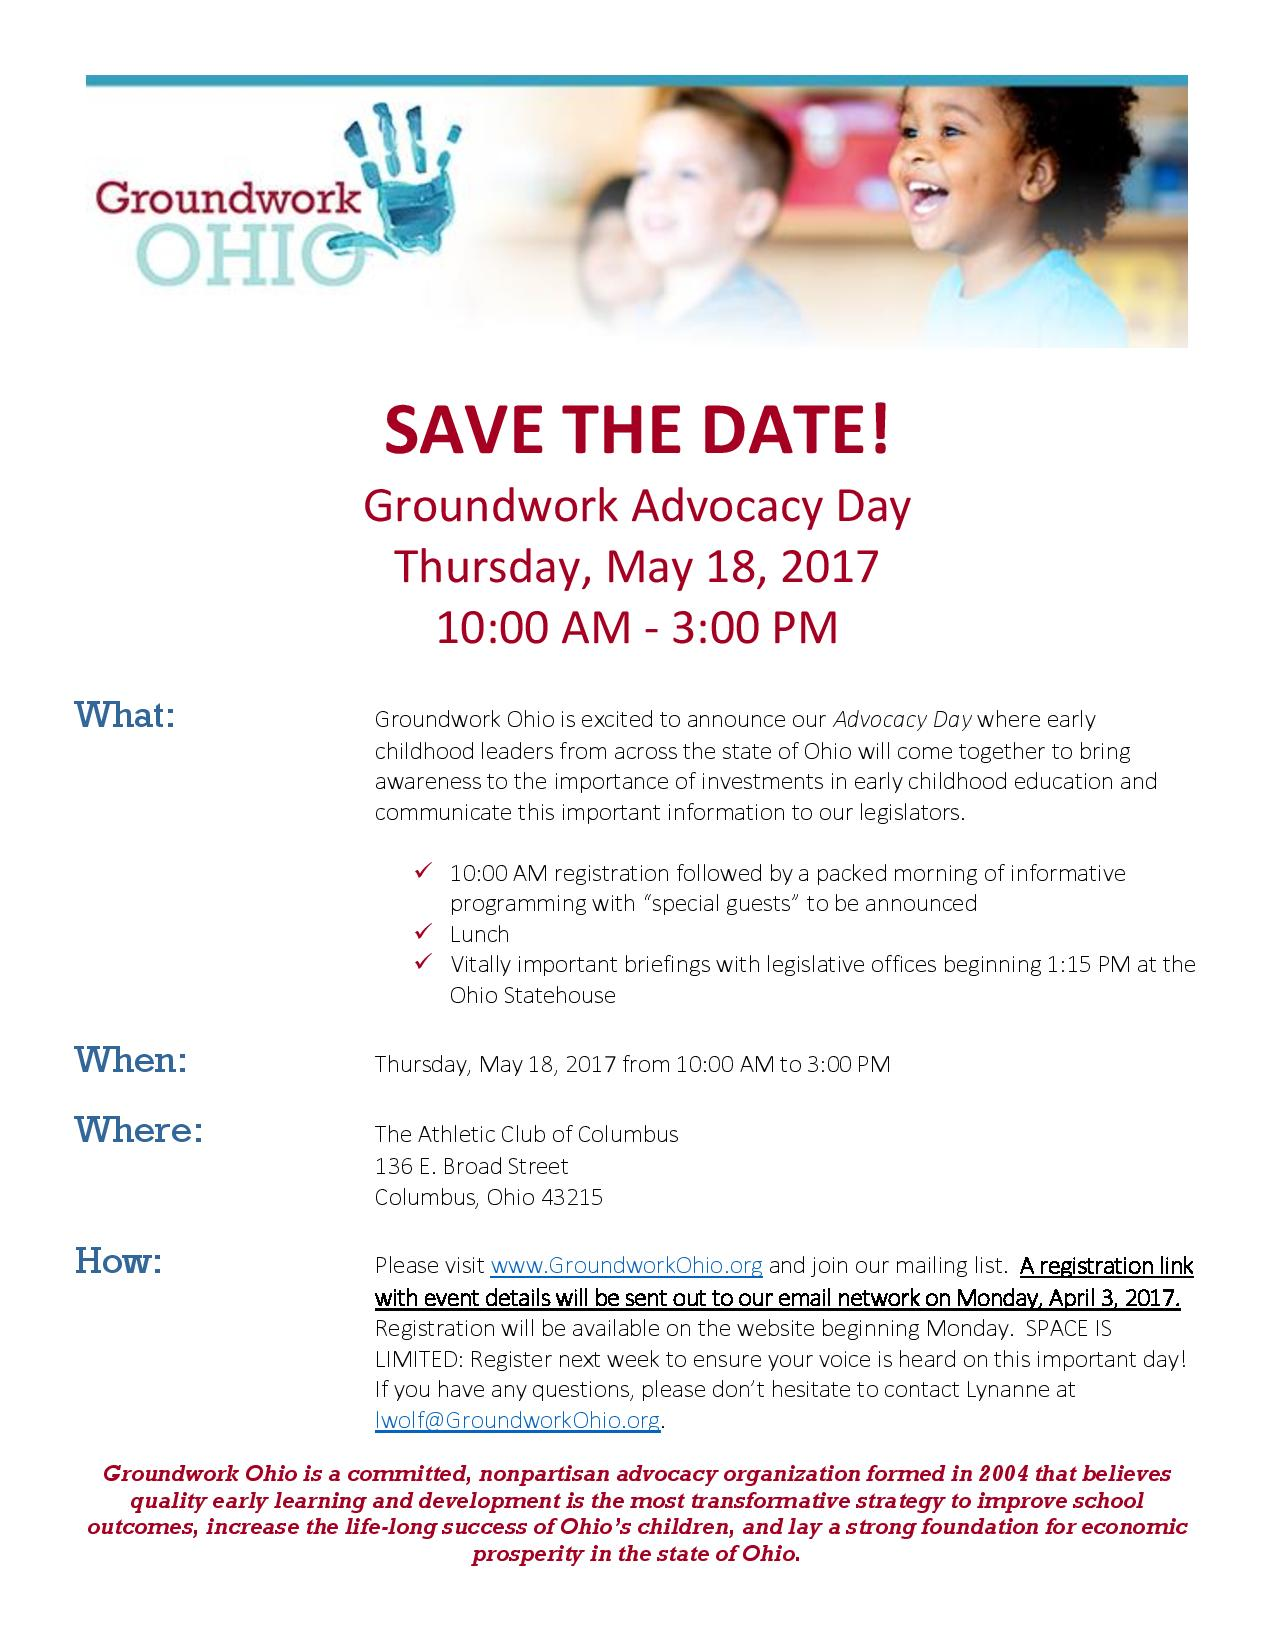 Save The Date Advocacy Day 51817 Groundwork Ohio Columbus Oh